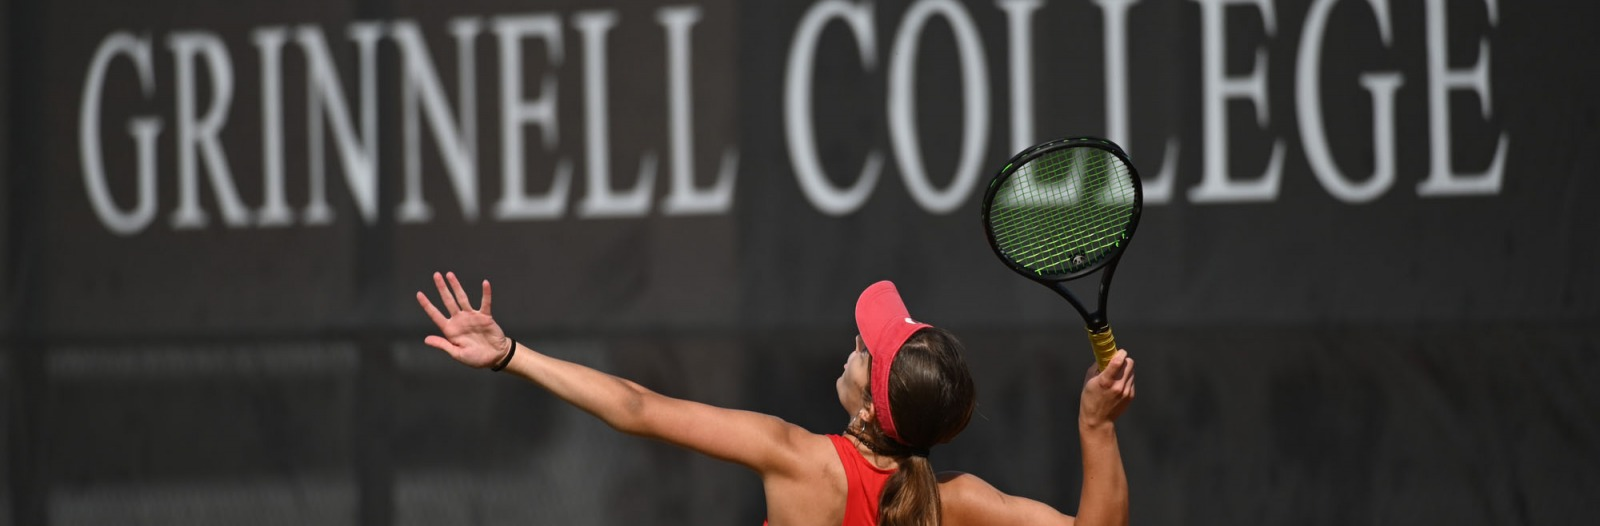 tennis player serves in front of 'Grinnell College' sign